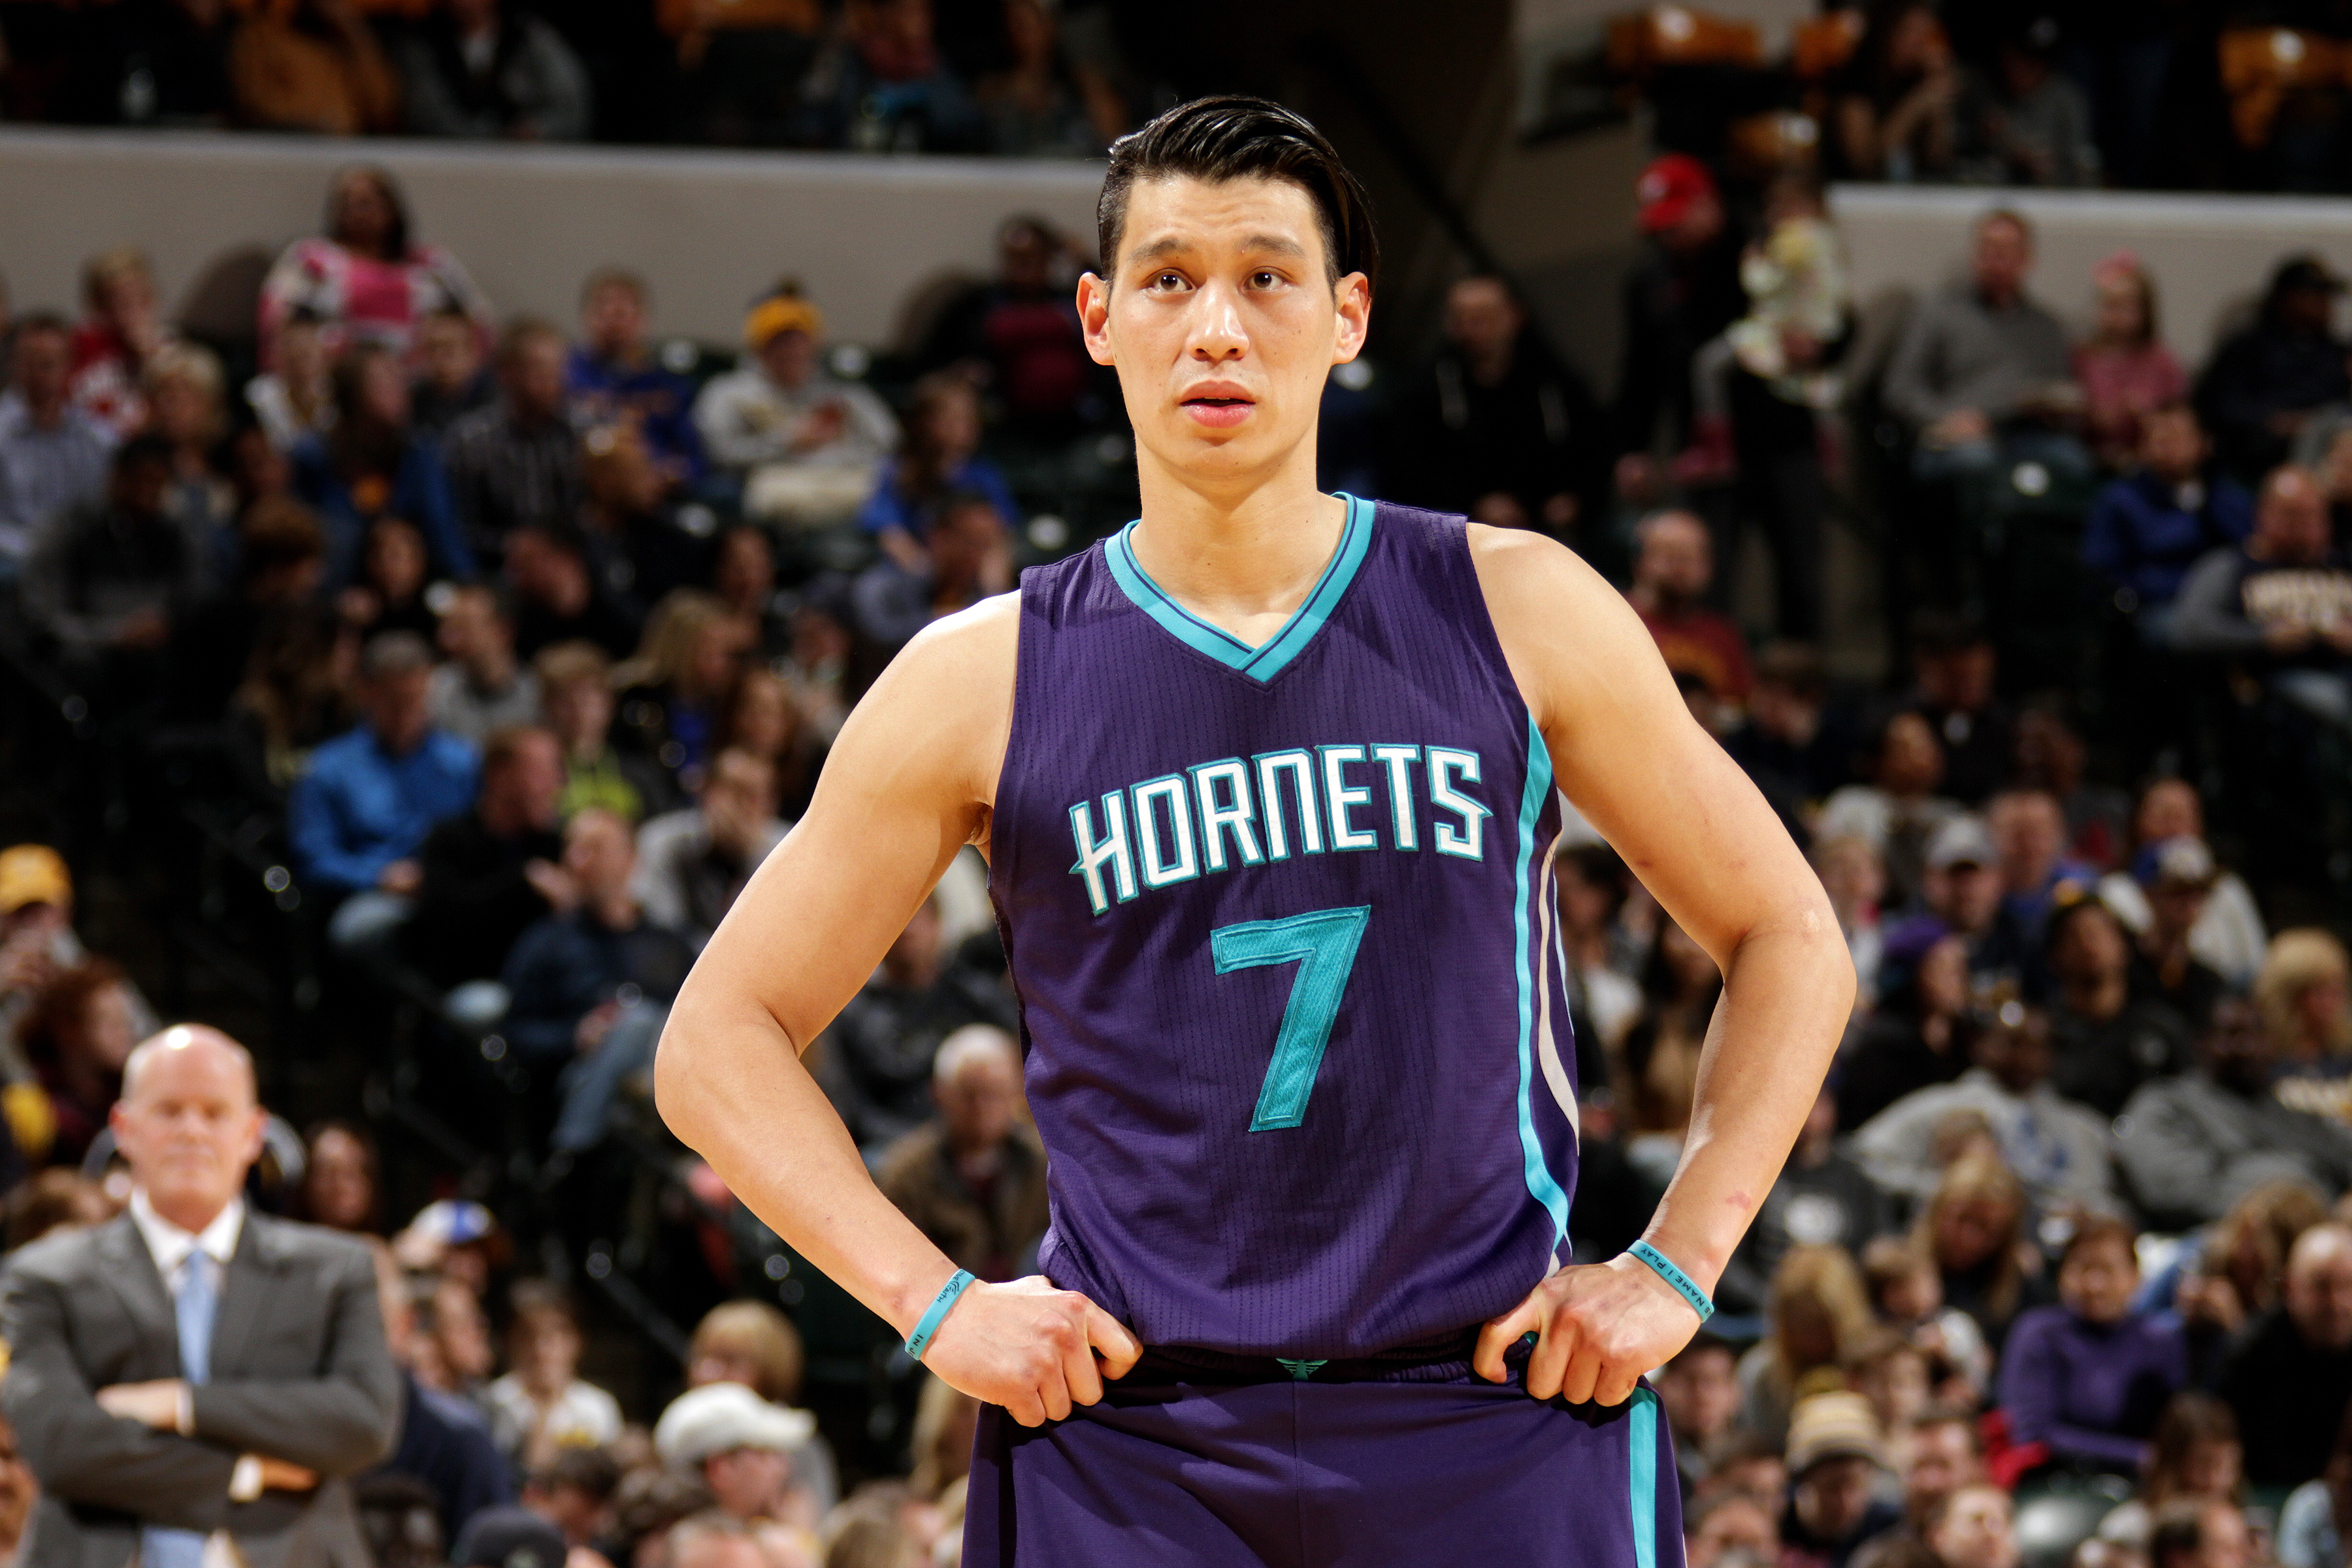 Jeremy Lin of the Charlotte Hornets looks on during a game in Indianapolis, on Feb. 26, 2016.